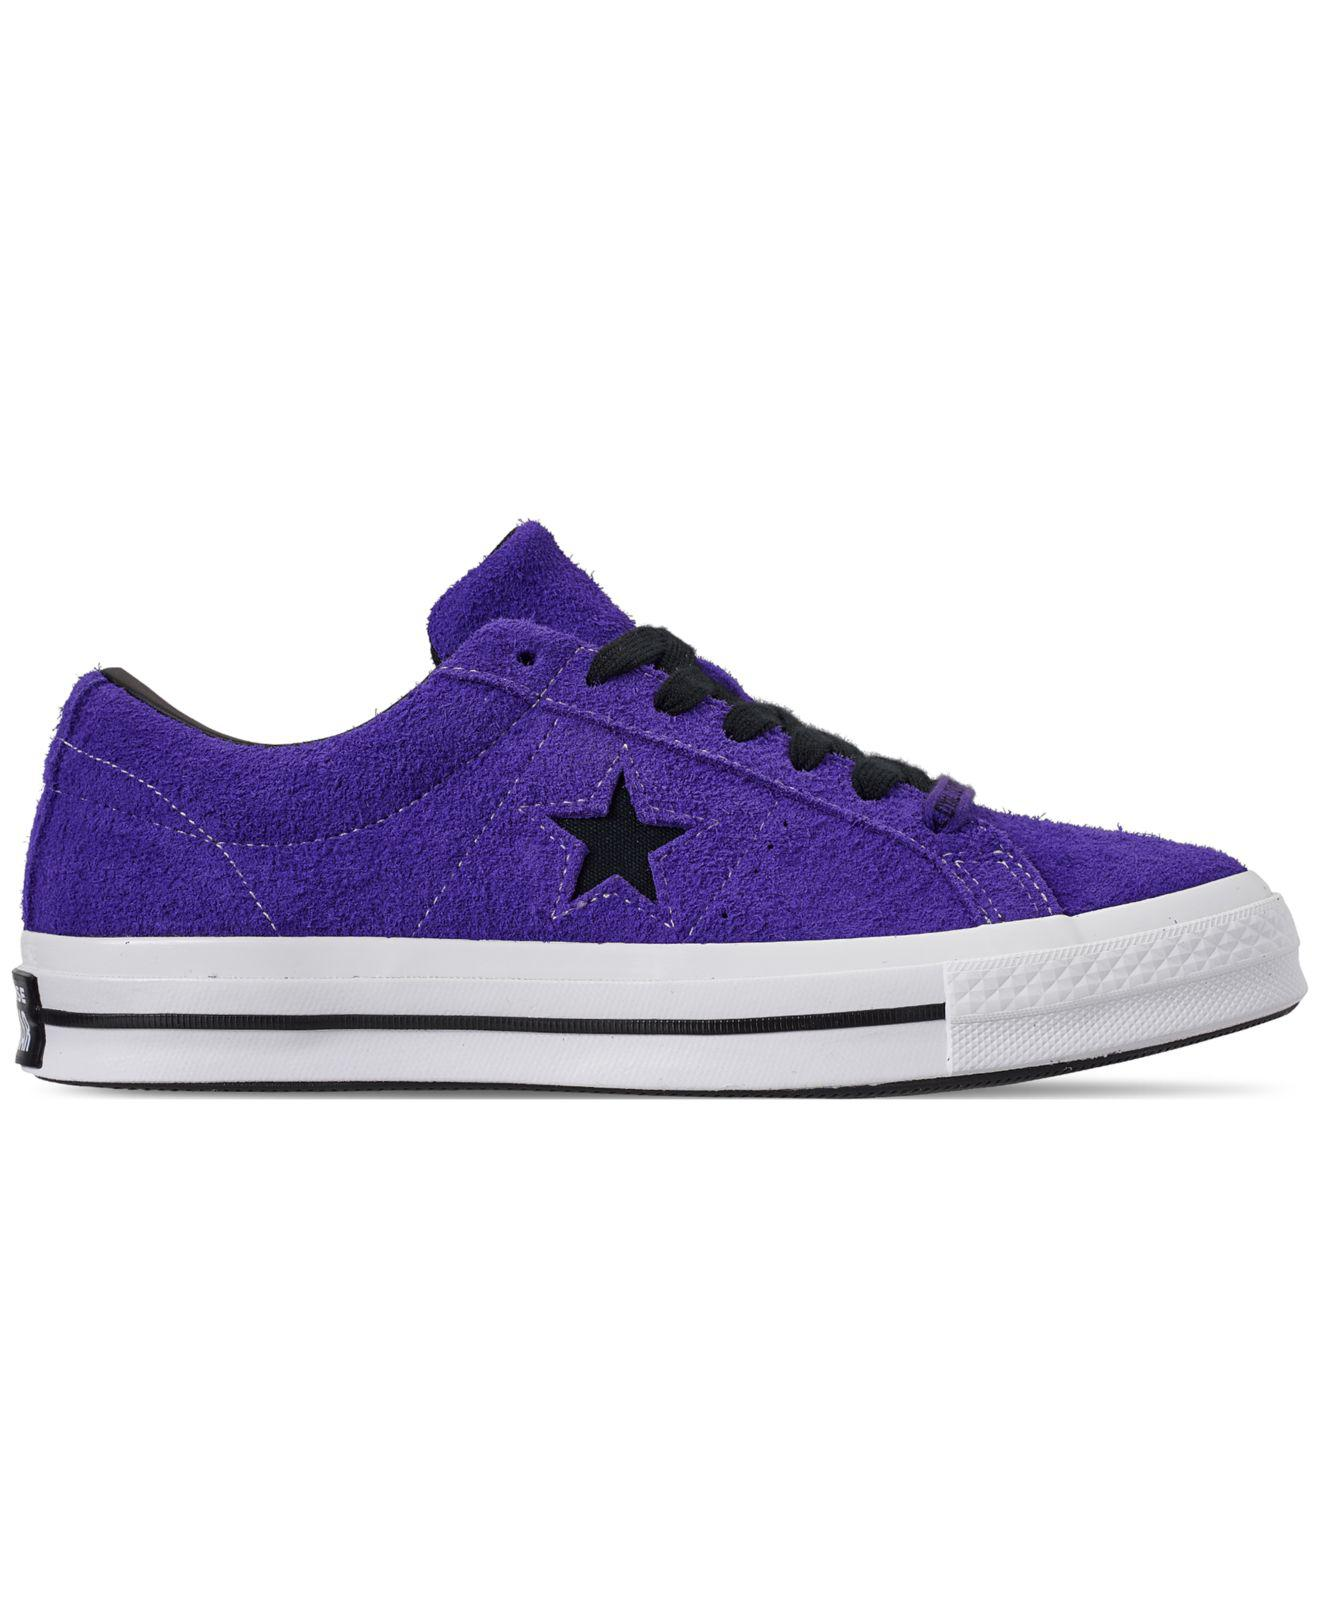 Lyst - Converse One Star Purple And Black Suede Trainers - Mens Uk 8 in  Purple for Men - Save 47% 58db6f3a4